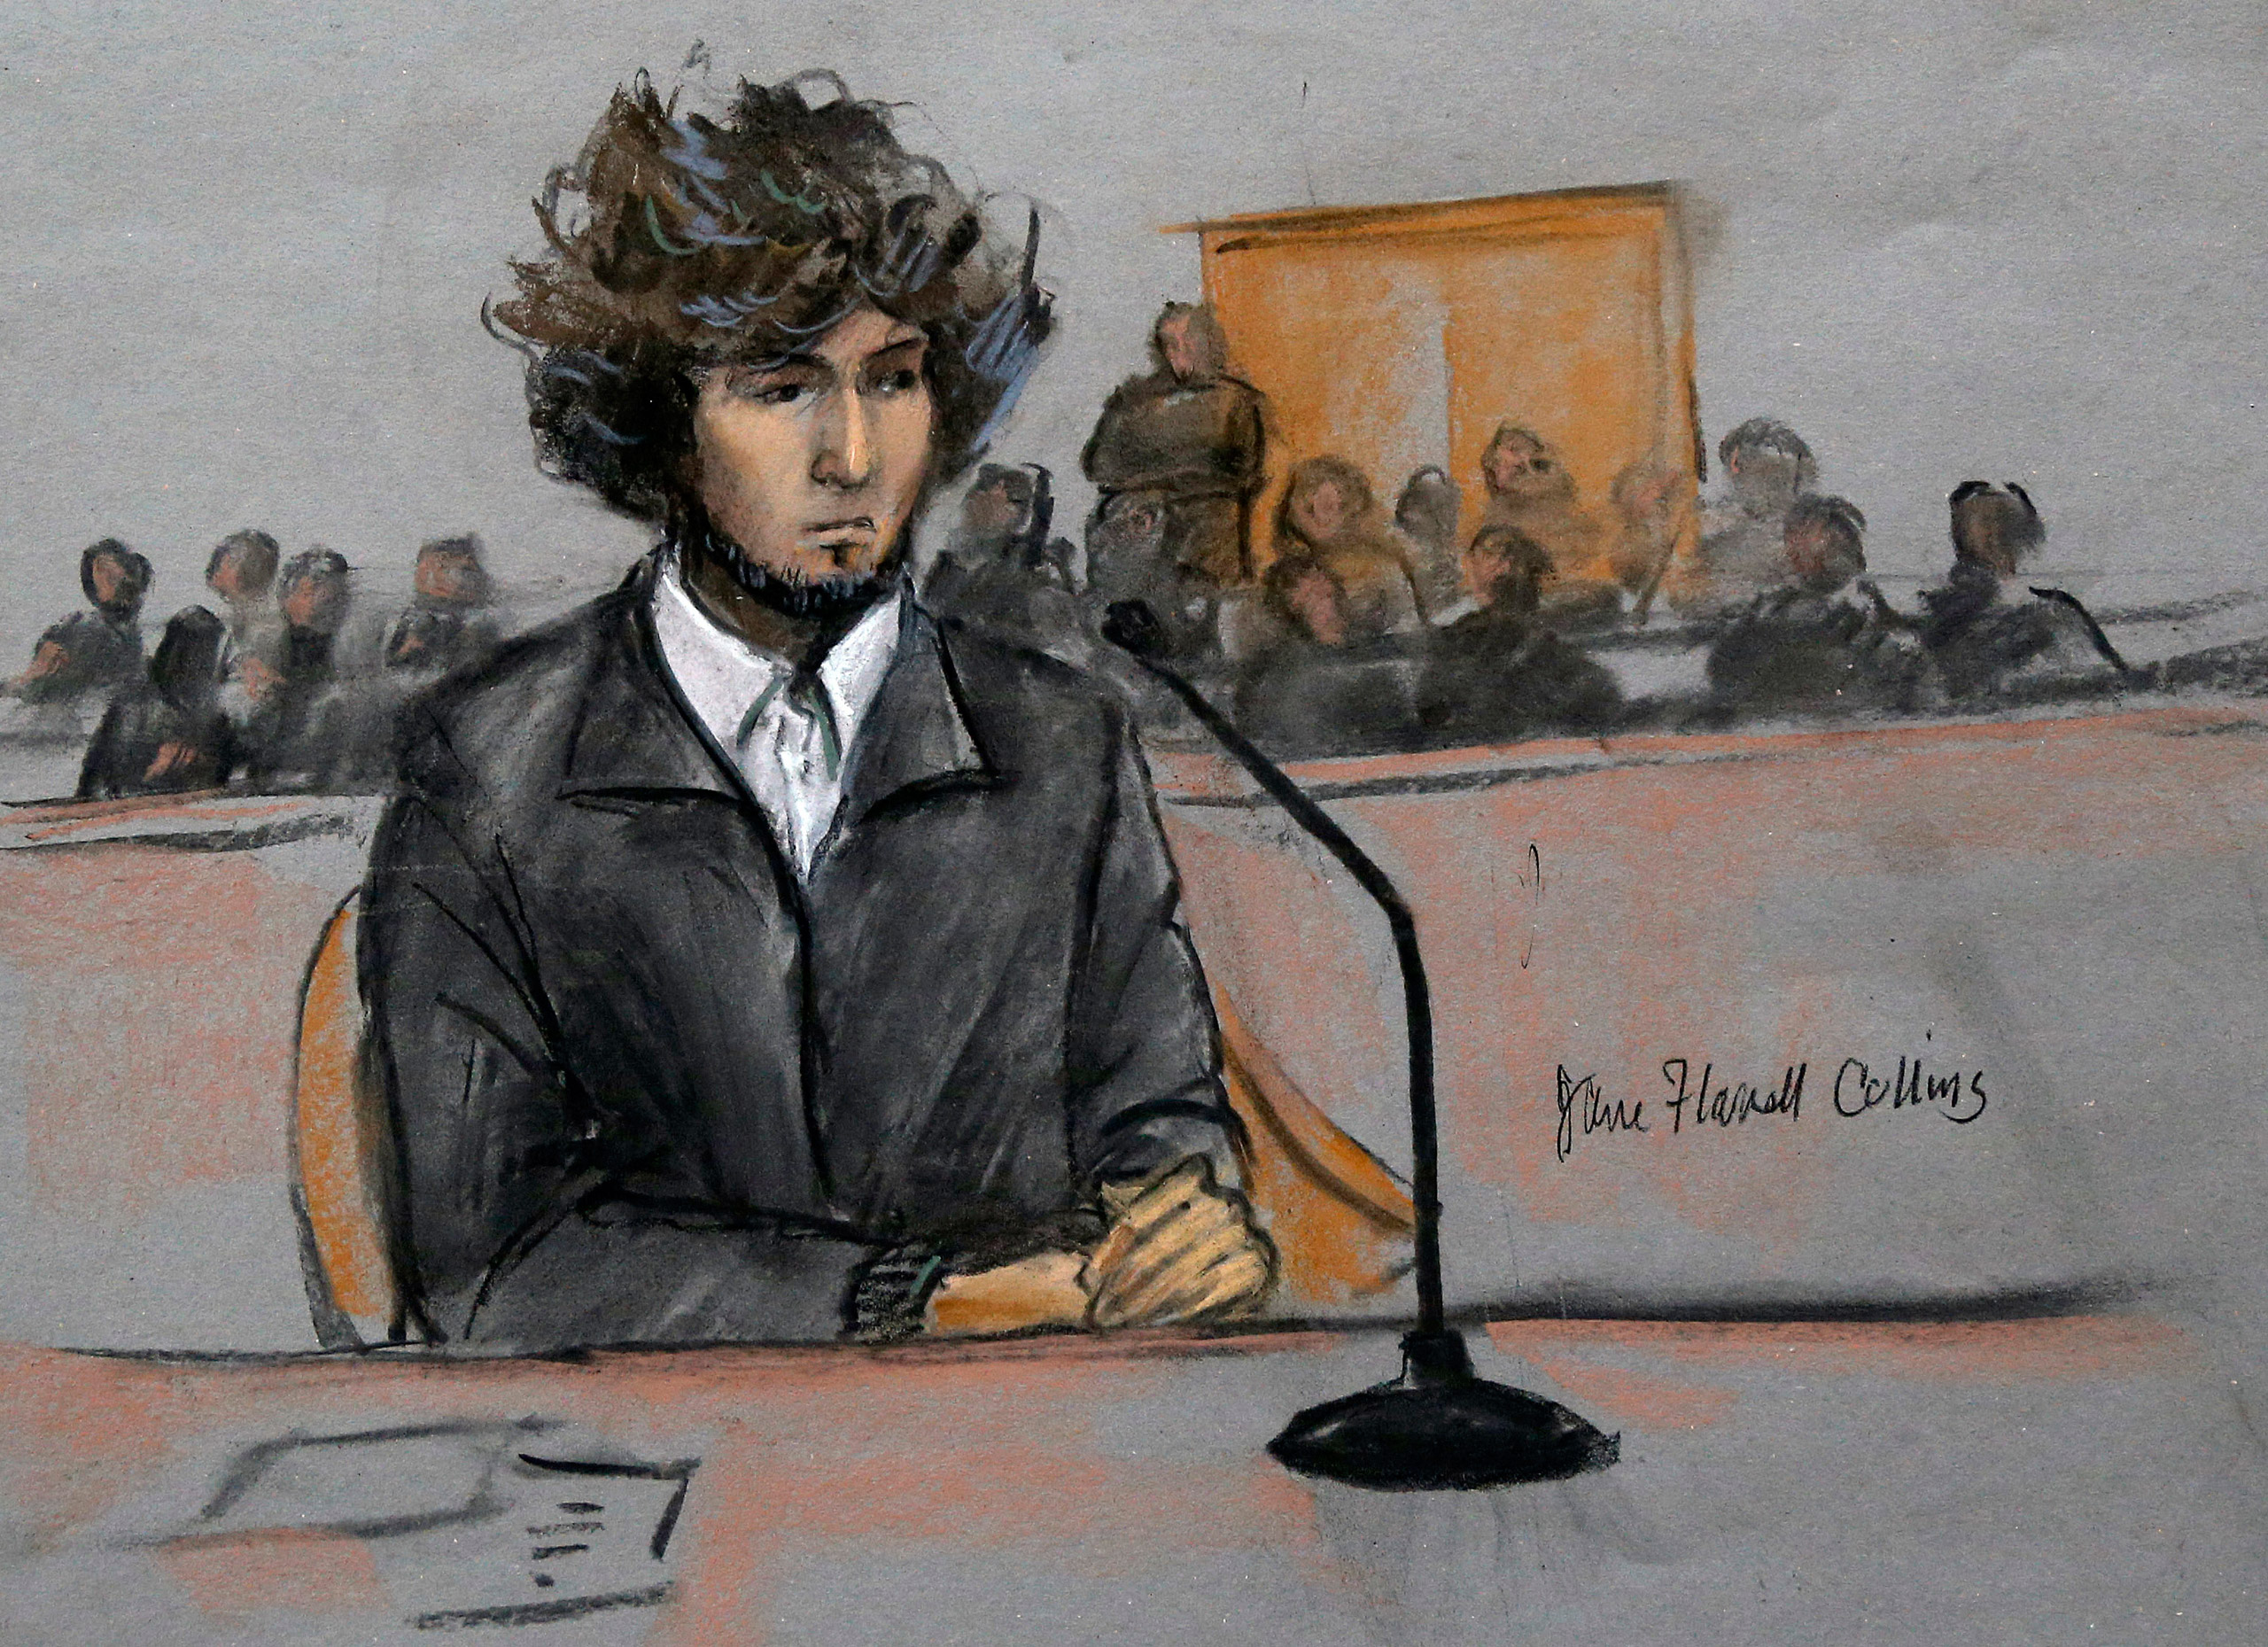 Boston Marathon bomber Dzhokhar Tsarnaev sits in federal court in Boston on Dec. 18, 2014, for a final hearing before the beginning of his trial in January. Tsarnaev was convicted and sentenced to death.